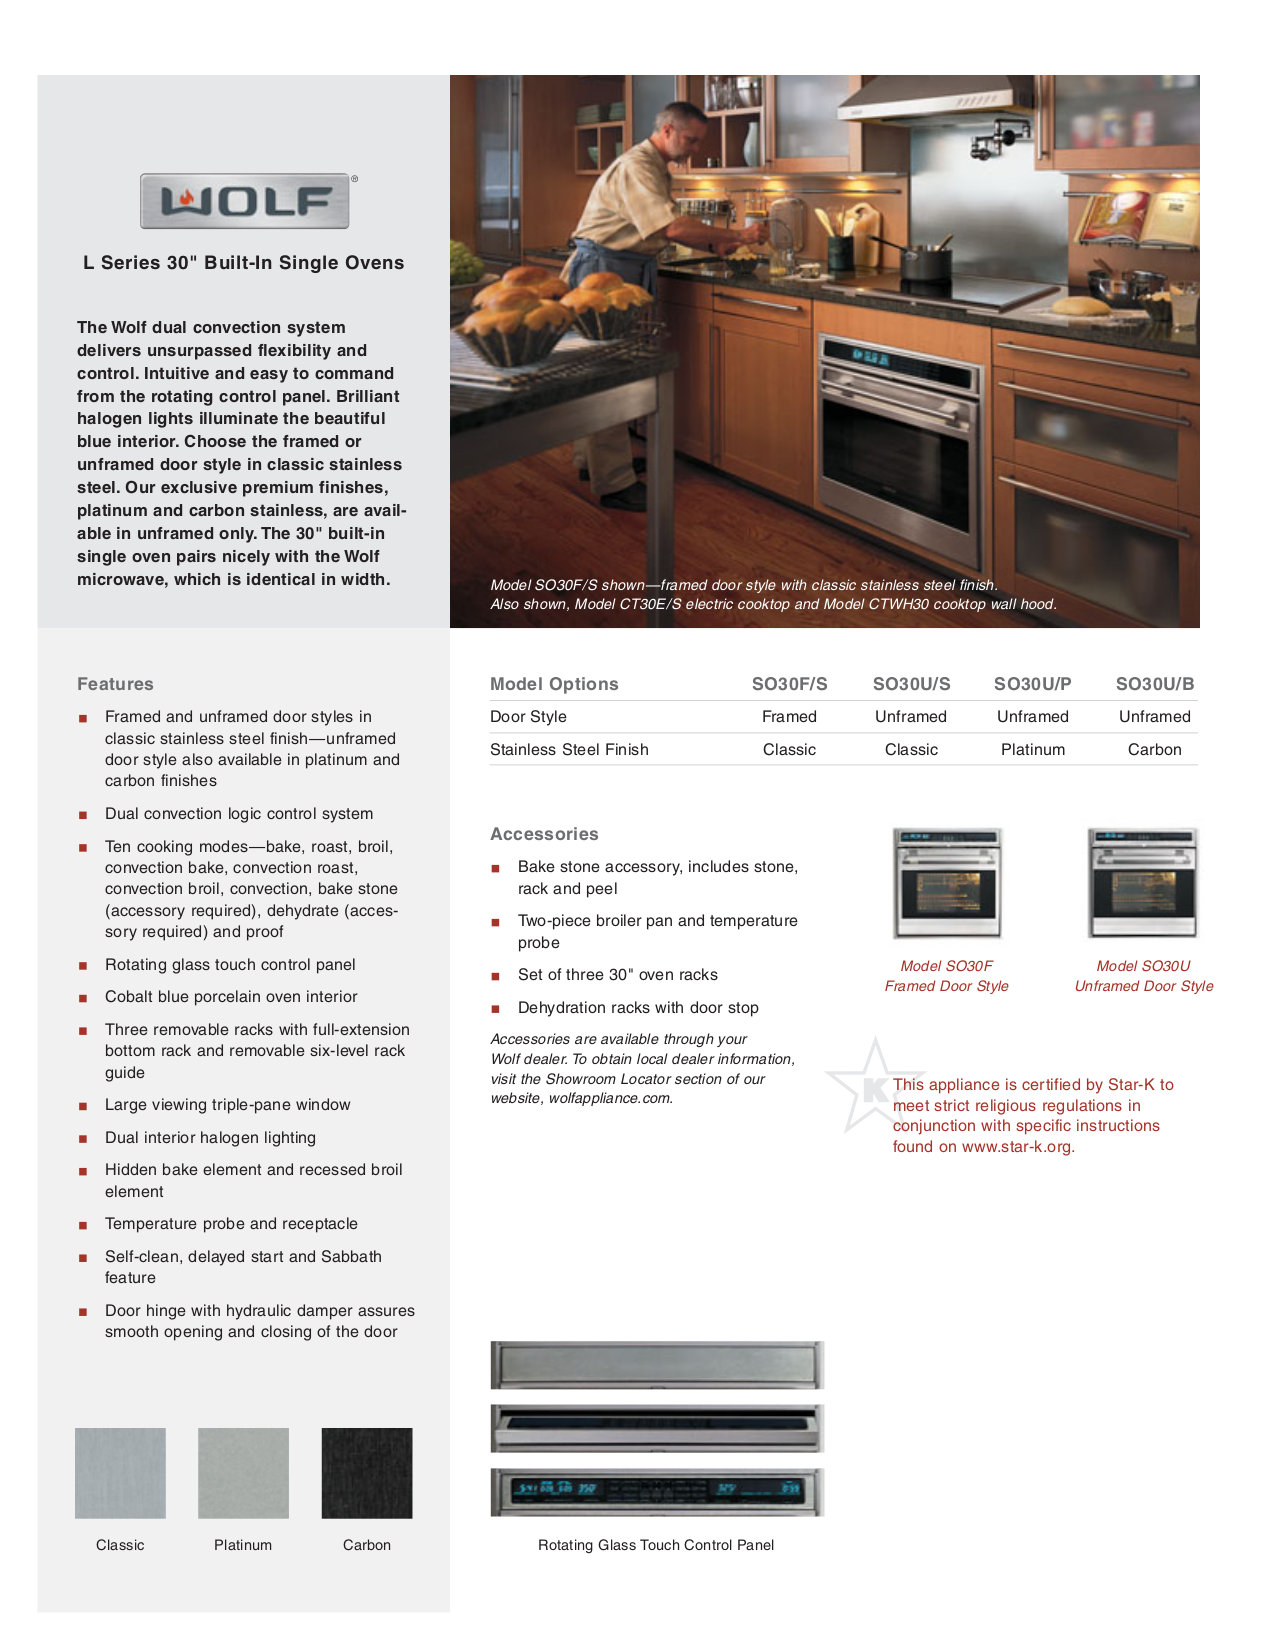 pdf for Wolf Oven L Series SO30F manual